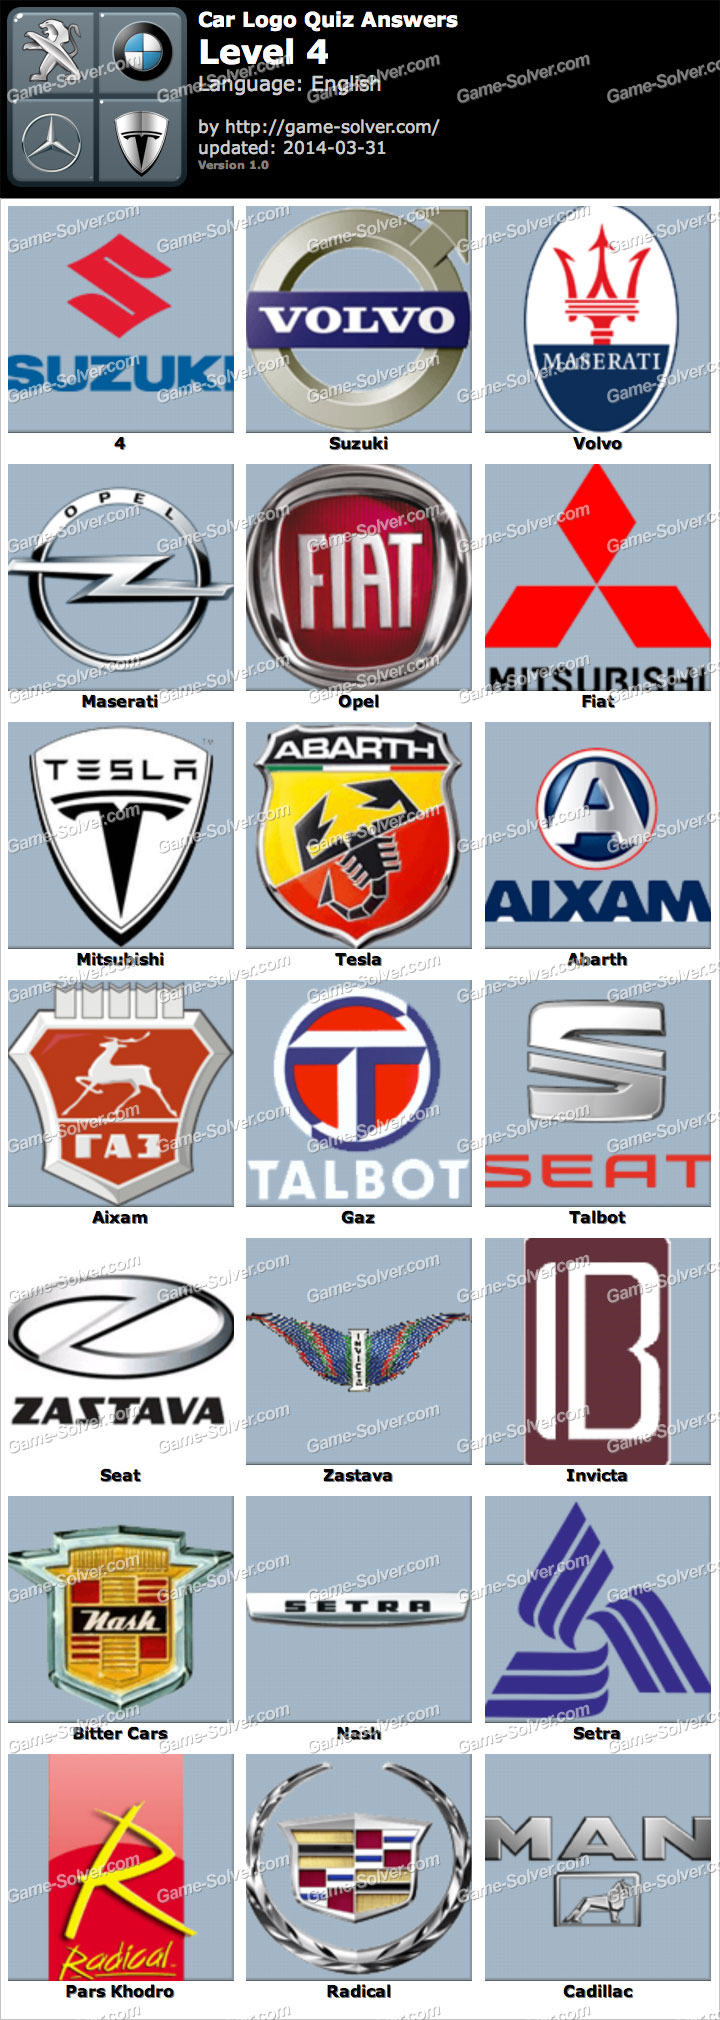 Car Logo Quiz Level 4 - Game Solver